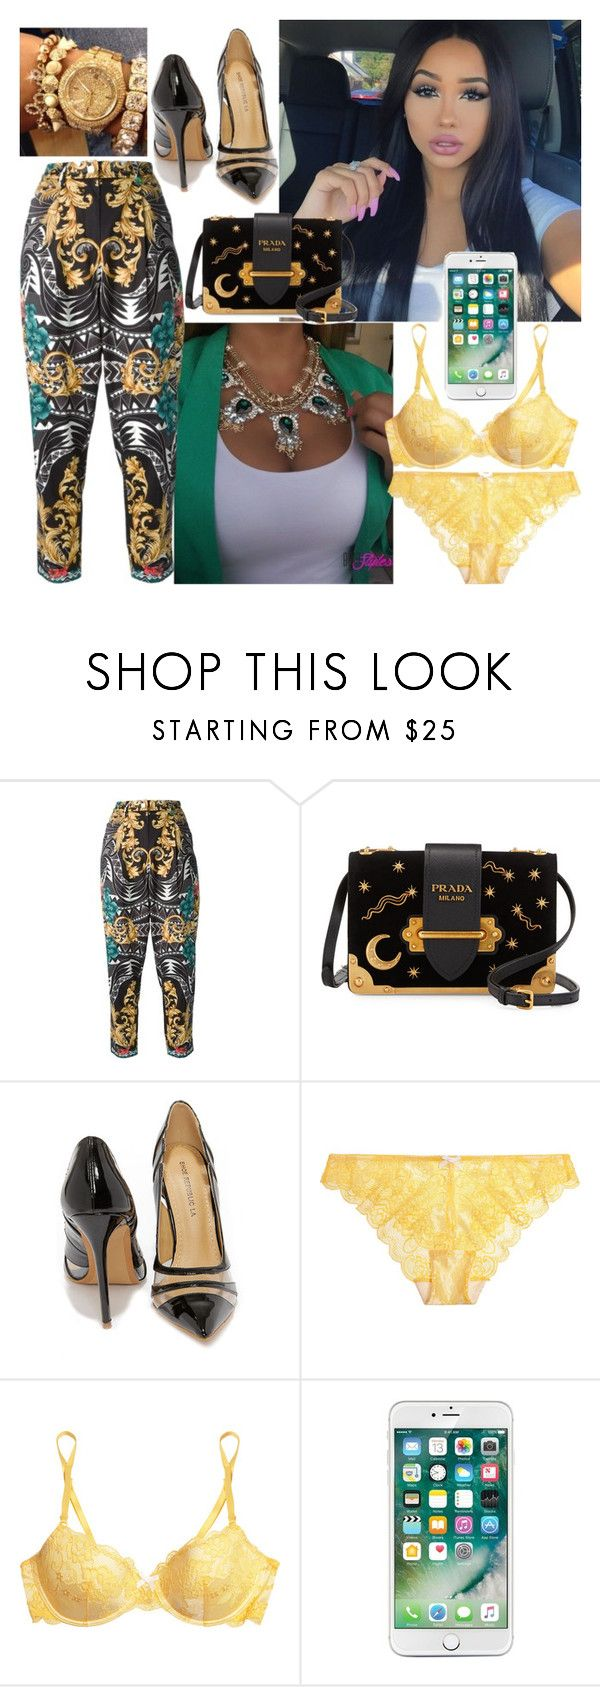 """""""To the Salon"""" by foreverlostinlove ❤ liked on Polyvore featuring Versace, Prada and Heidi Klum Intimates"""